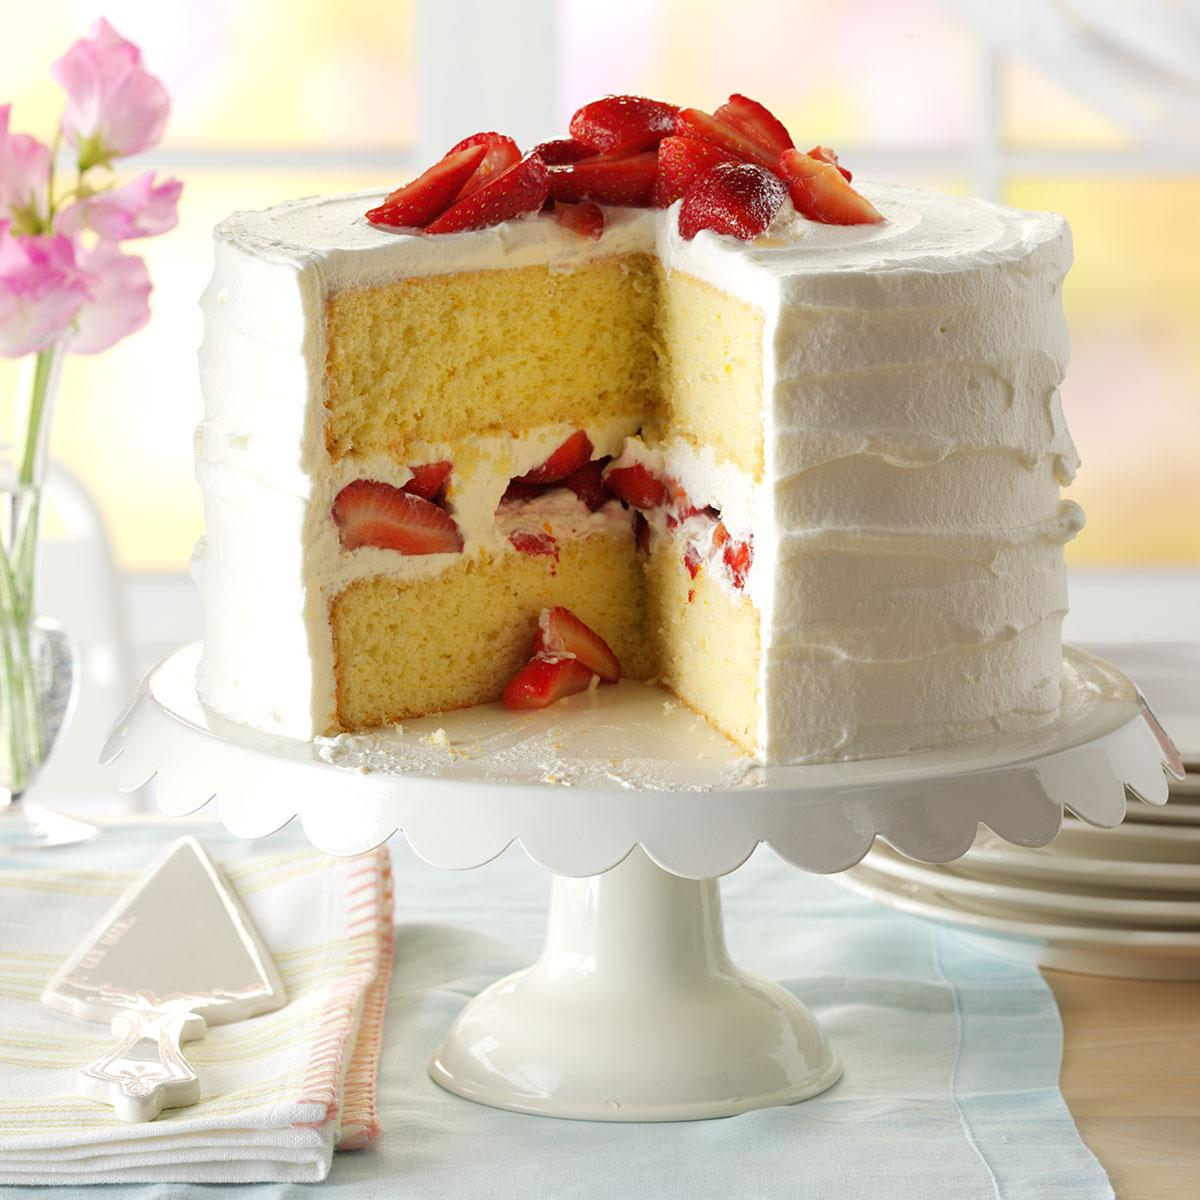 Strawberry Mascarpone Cake